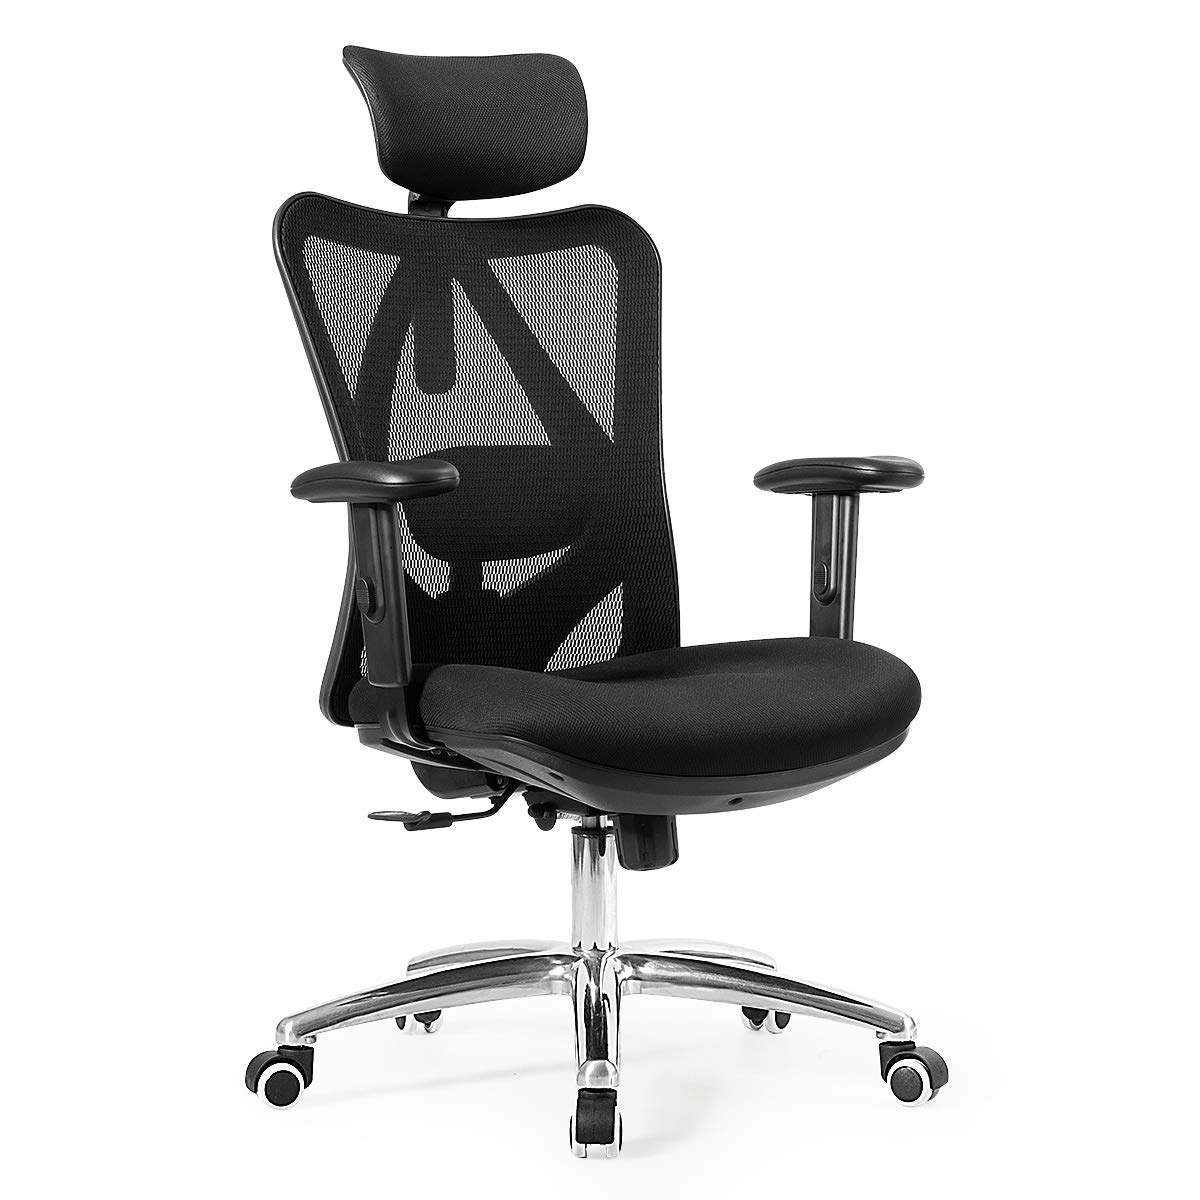 Giantex Ergonomic Mesh Office Chair Adjustable High Back Chair with Adjustable Headrest and Tilt-Down Backrest, Ergonomic Breathable Computer Desk Chair, Executive Mesh Task Chair (Black)